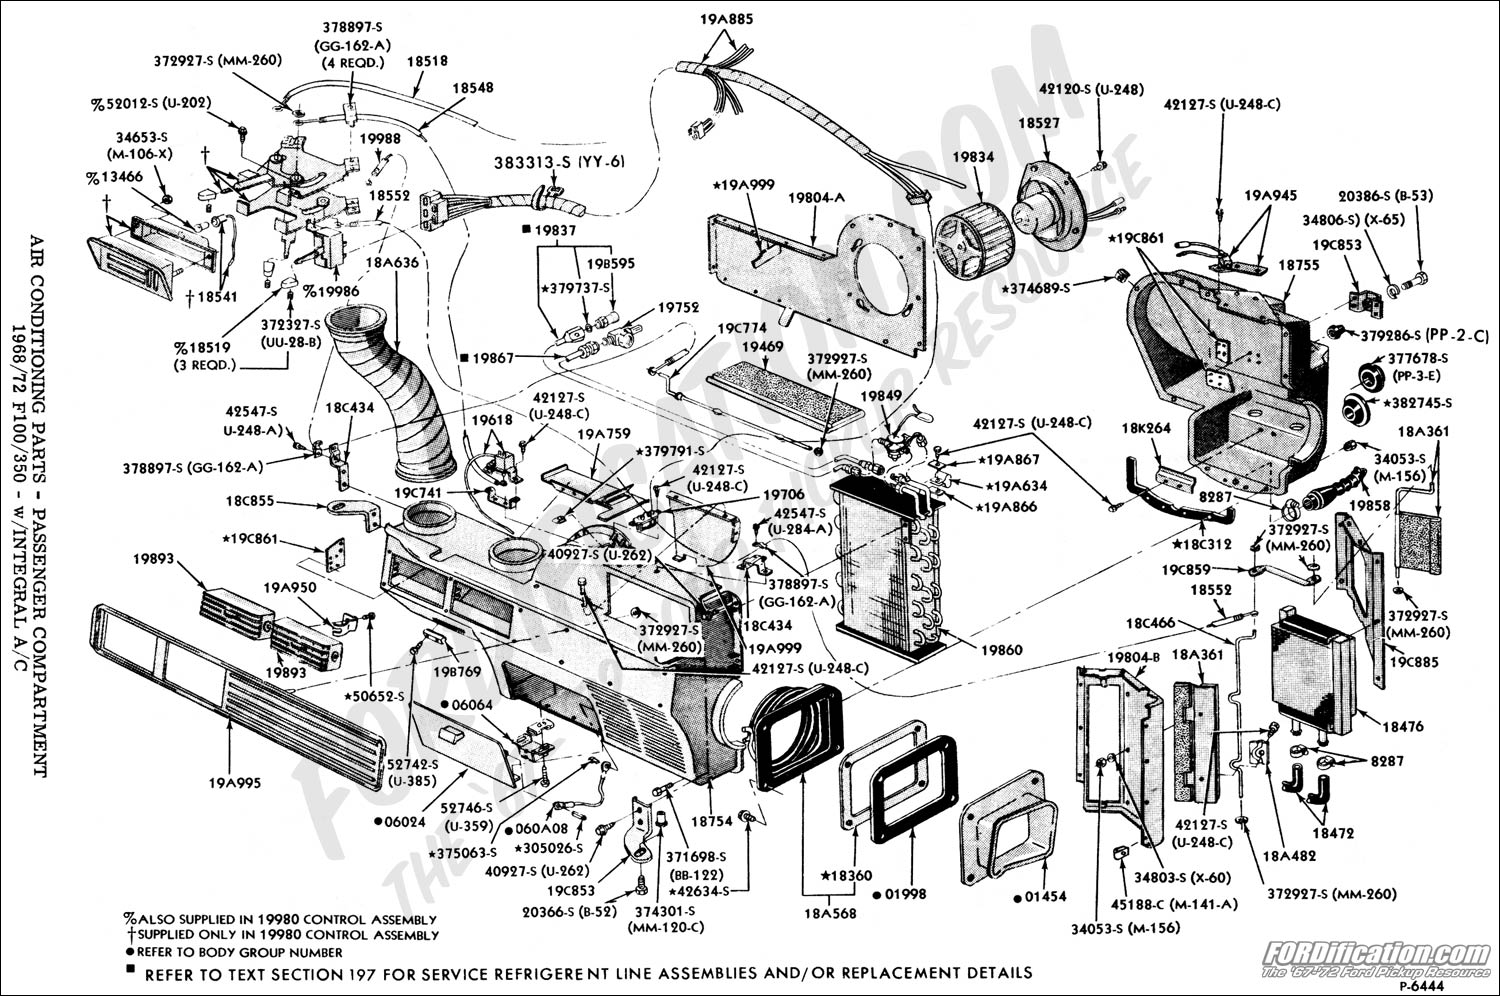 wiring diagram of aircon with Ac Unit Integral on Sunroof5door together with Index in addition 1992 Citroen Bx Electrical Wiring Diagram also Forum viewtopic as well 1958 Buick Heater Air Conditioner.